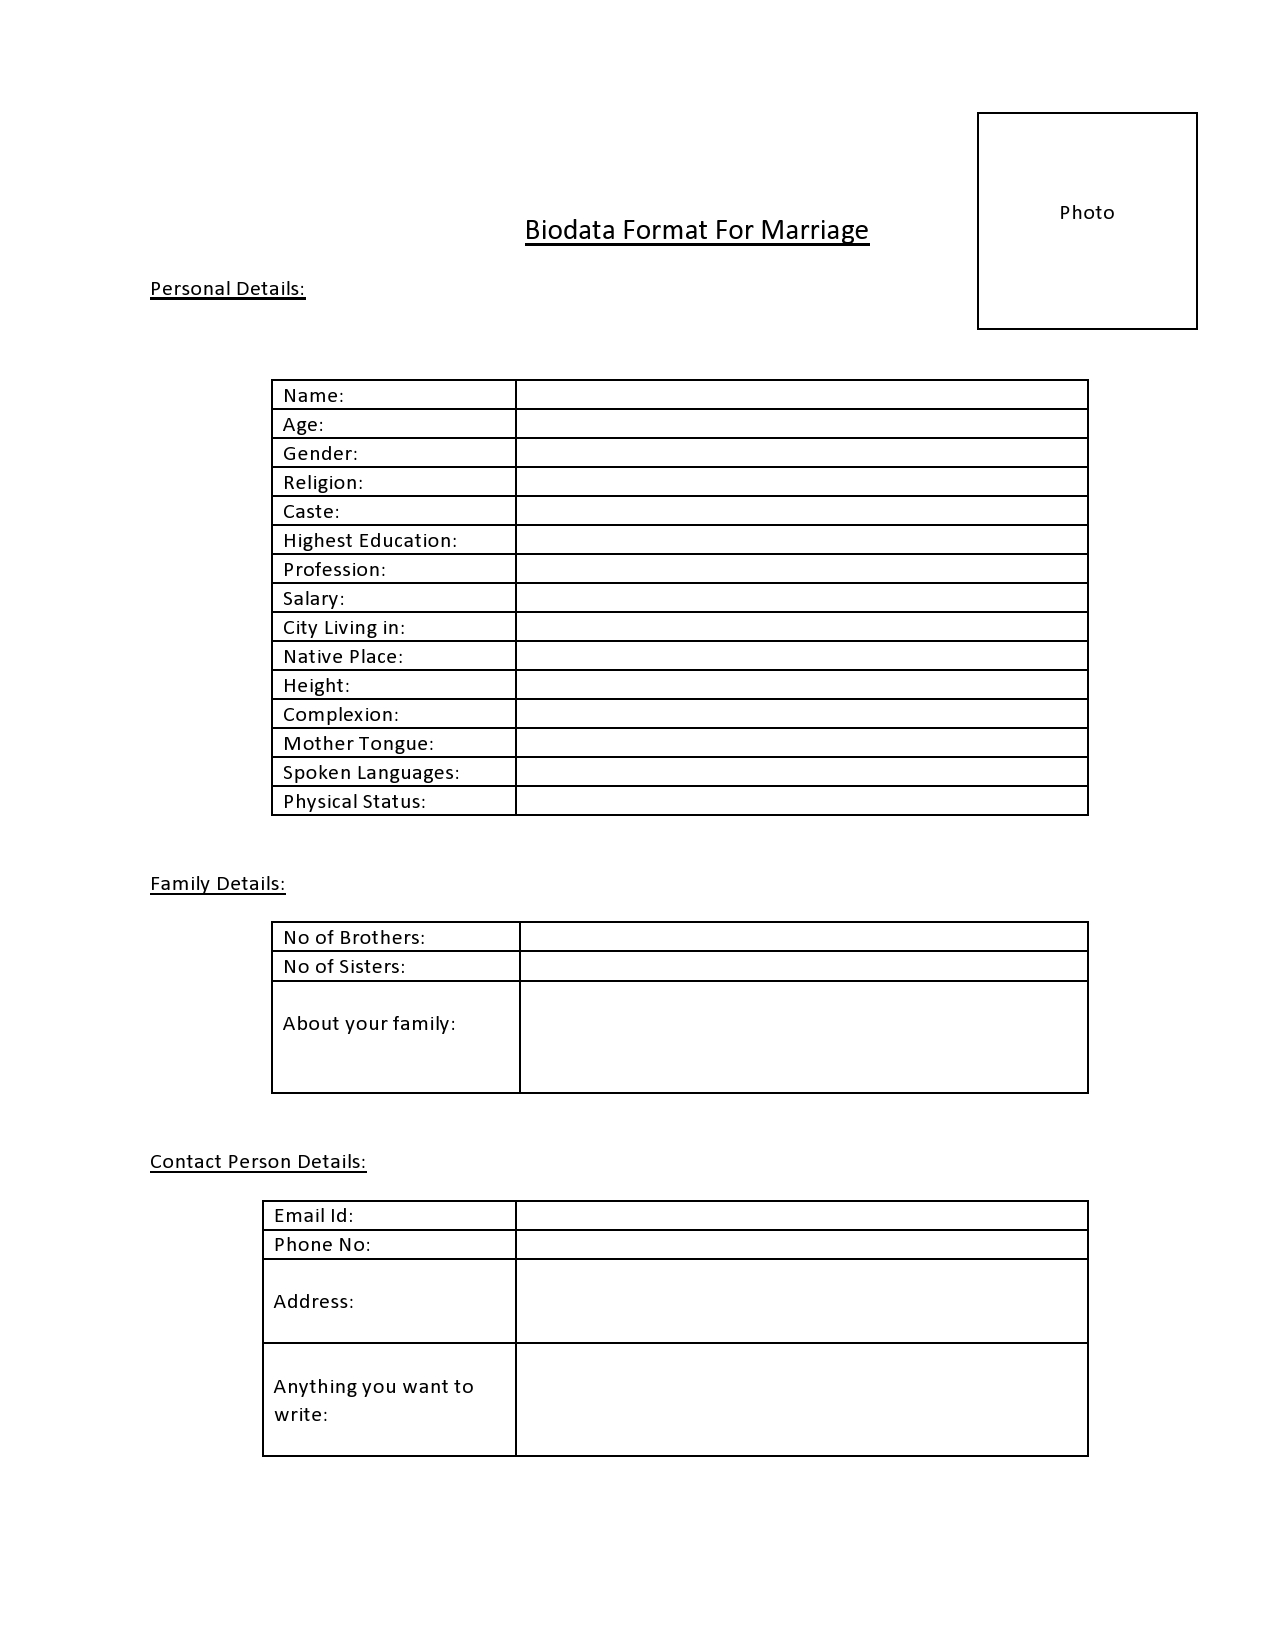 Biodata Format For Marriage  Free Download Biodata Format